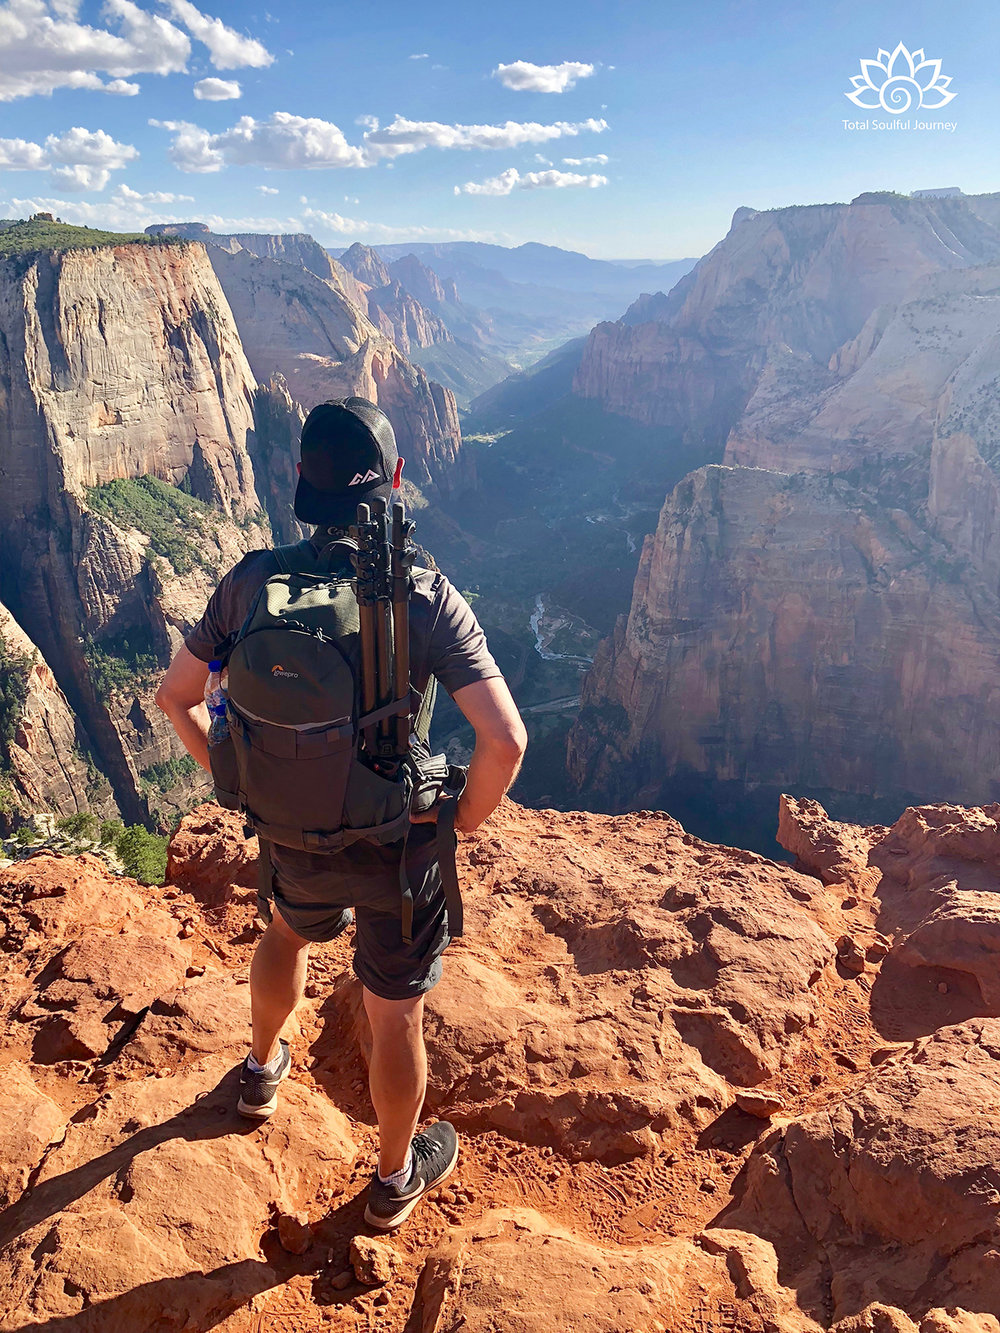 My Blogging Partner, Paul Garrett, loves to hike and explore, but standing on the edge of a cliff is totally outside of his comfort Zone.